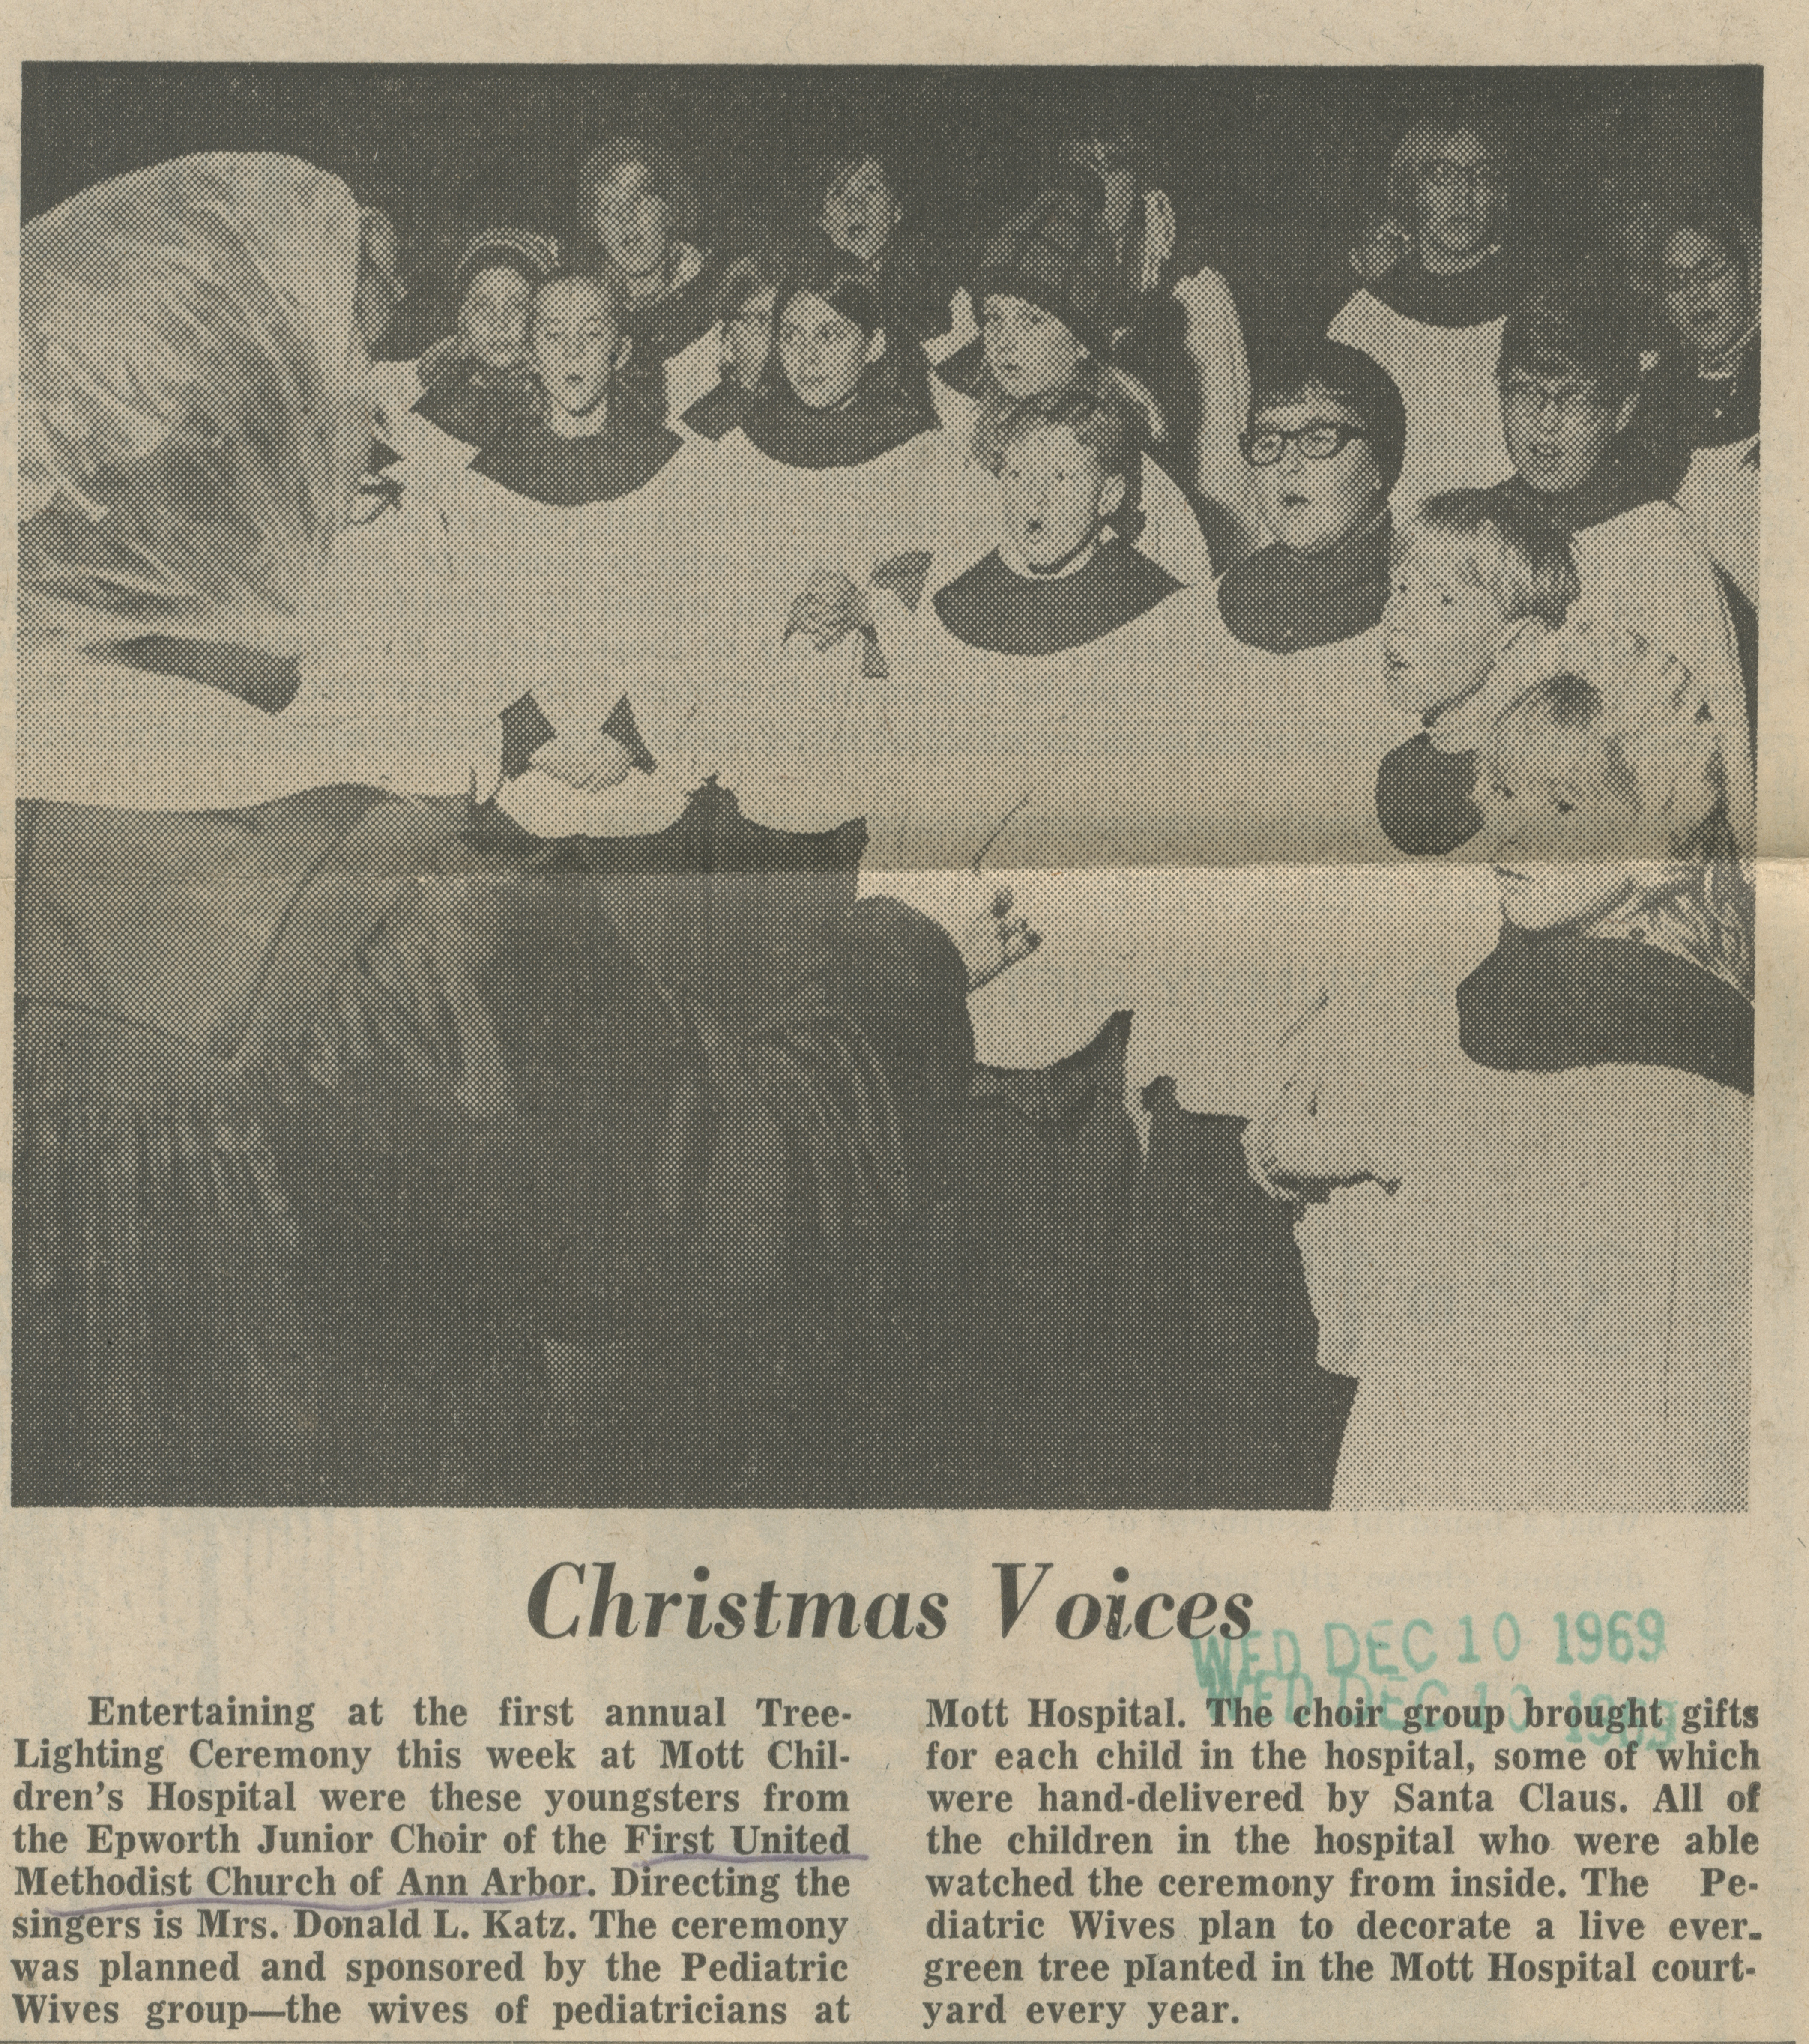 Christmas Voices image